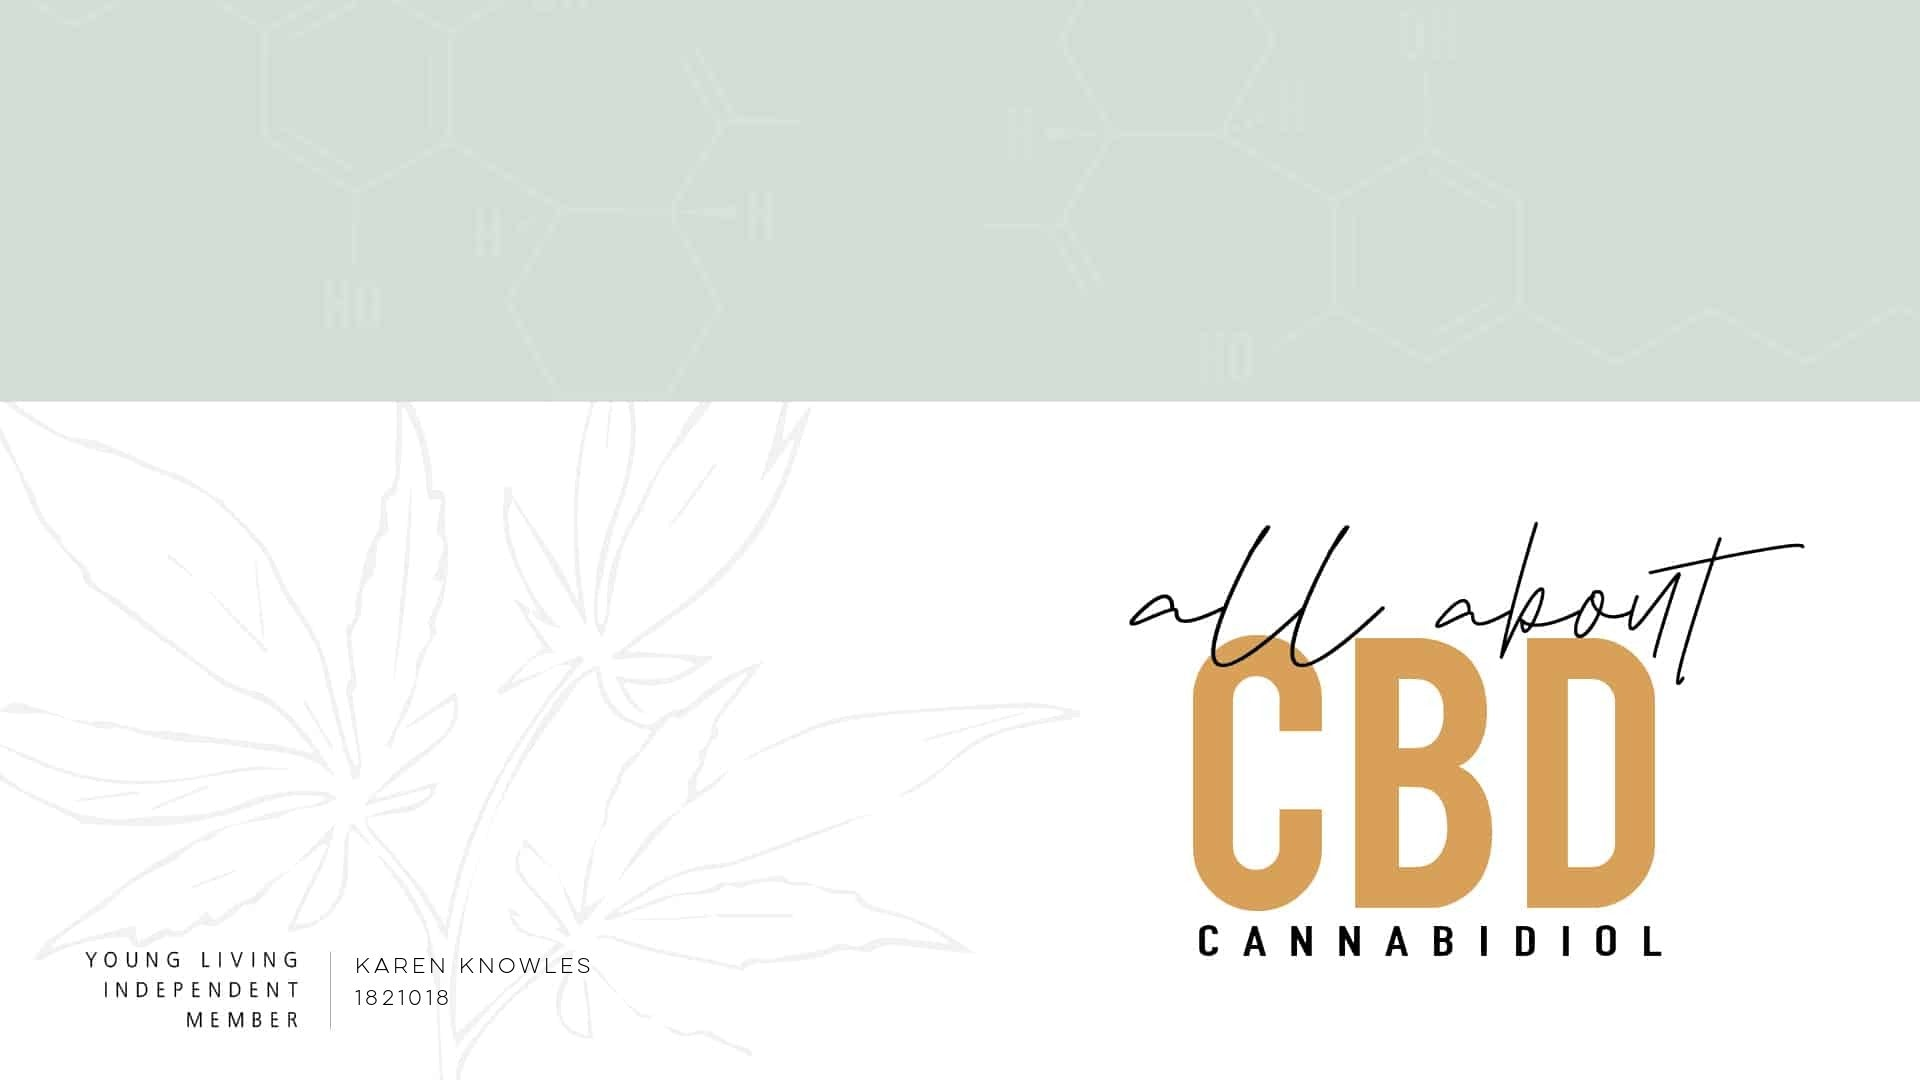 Young Living's CBD line Presented